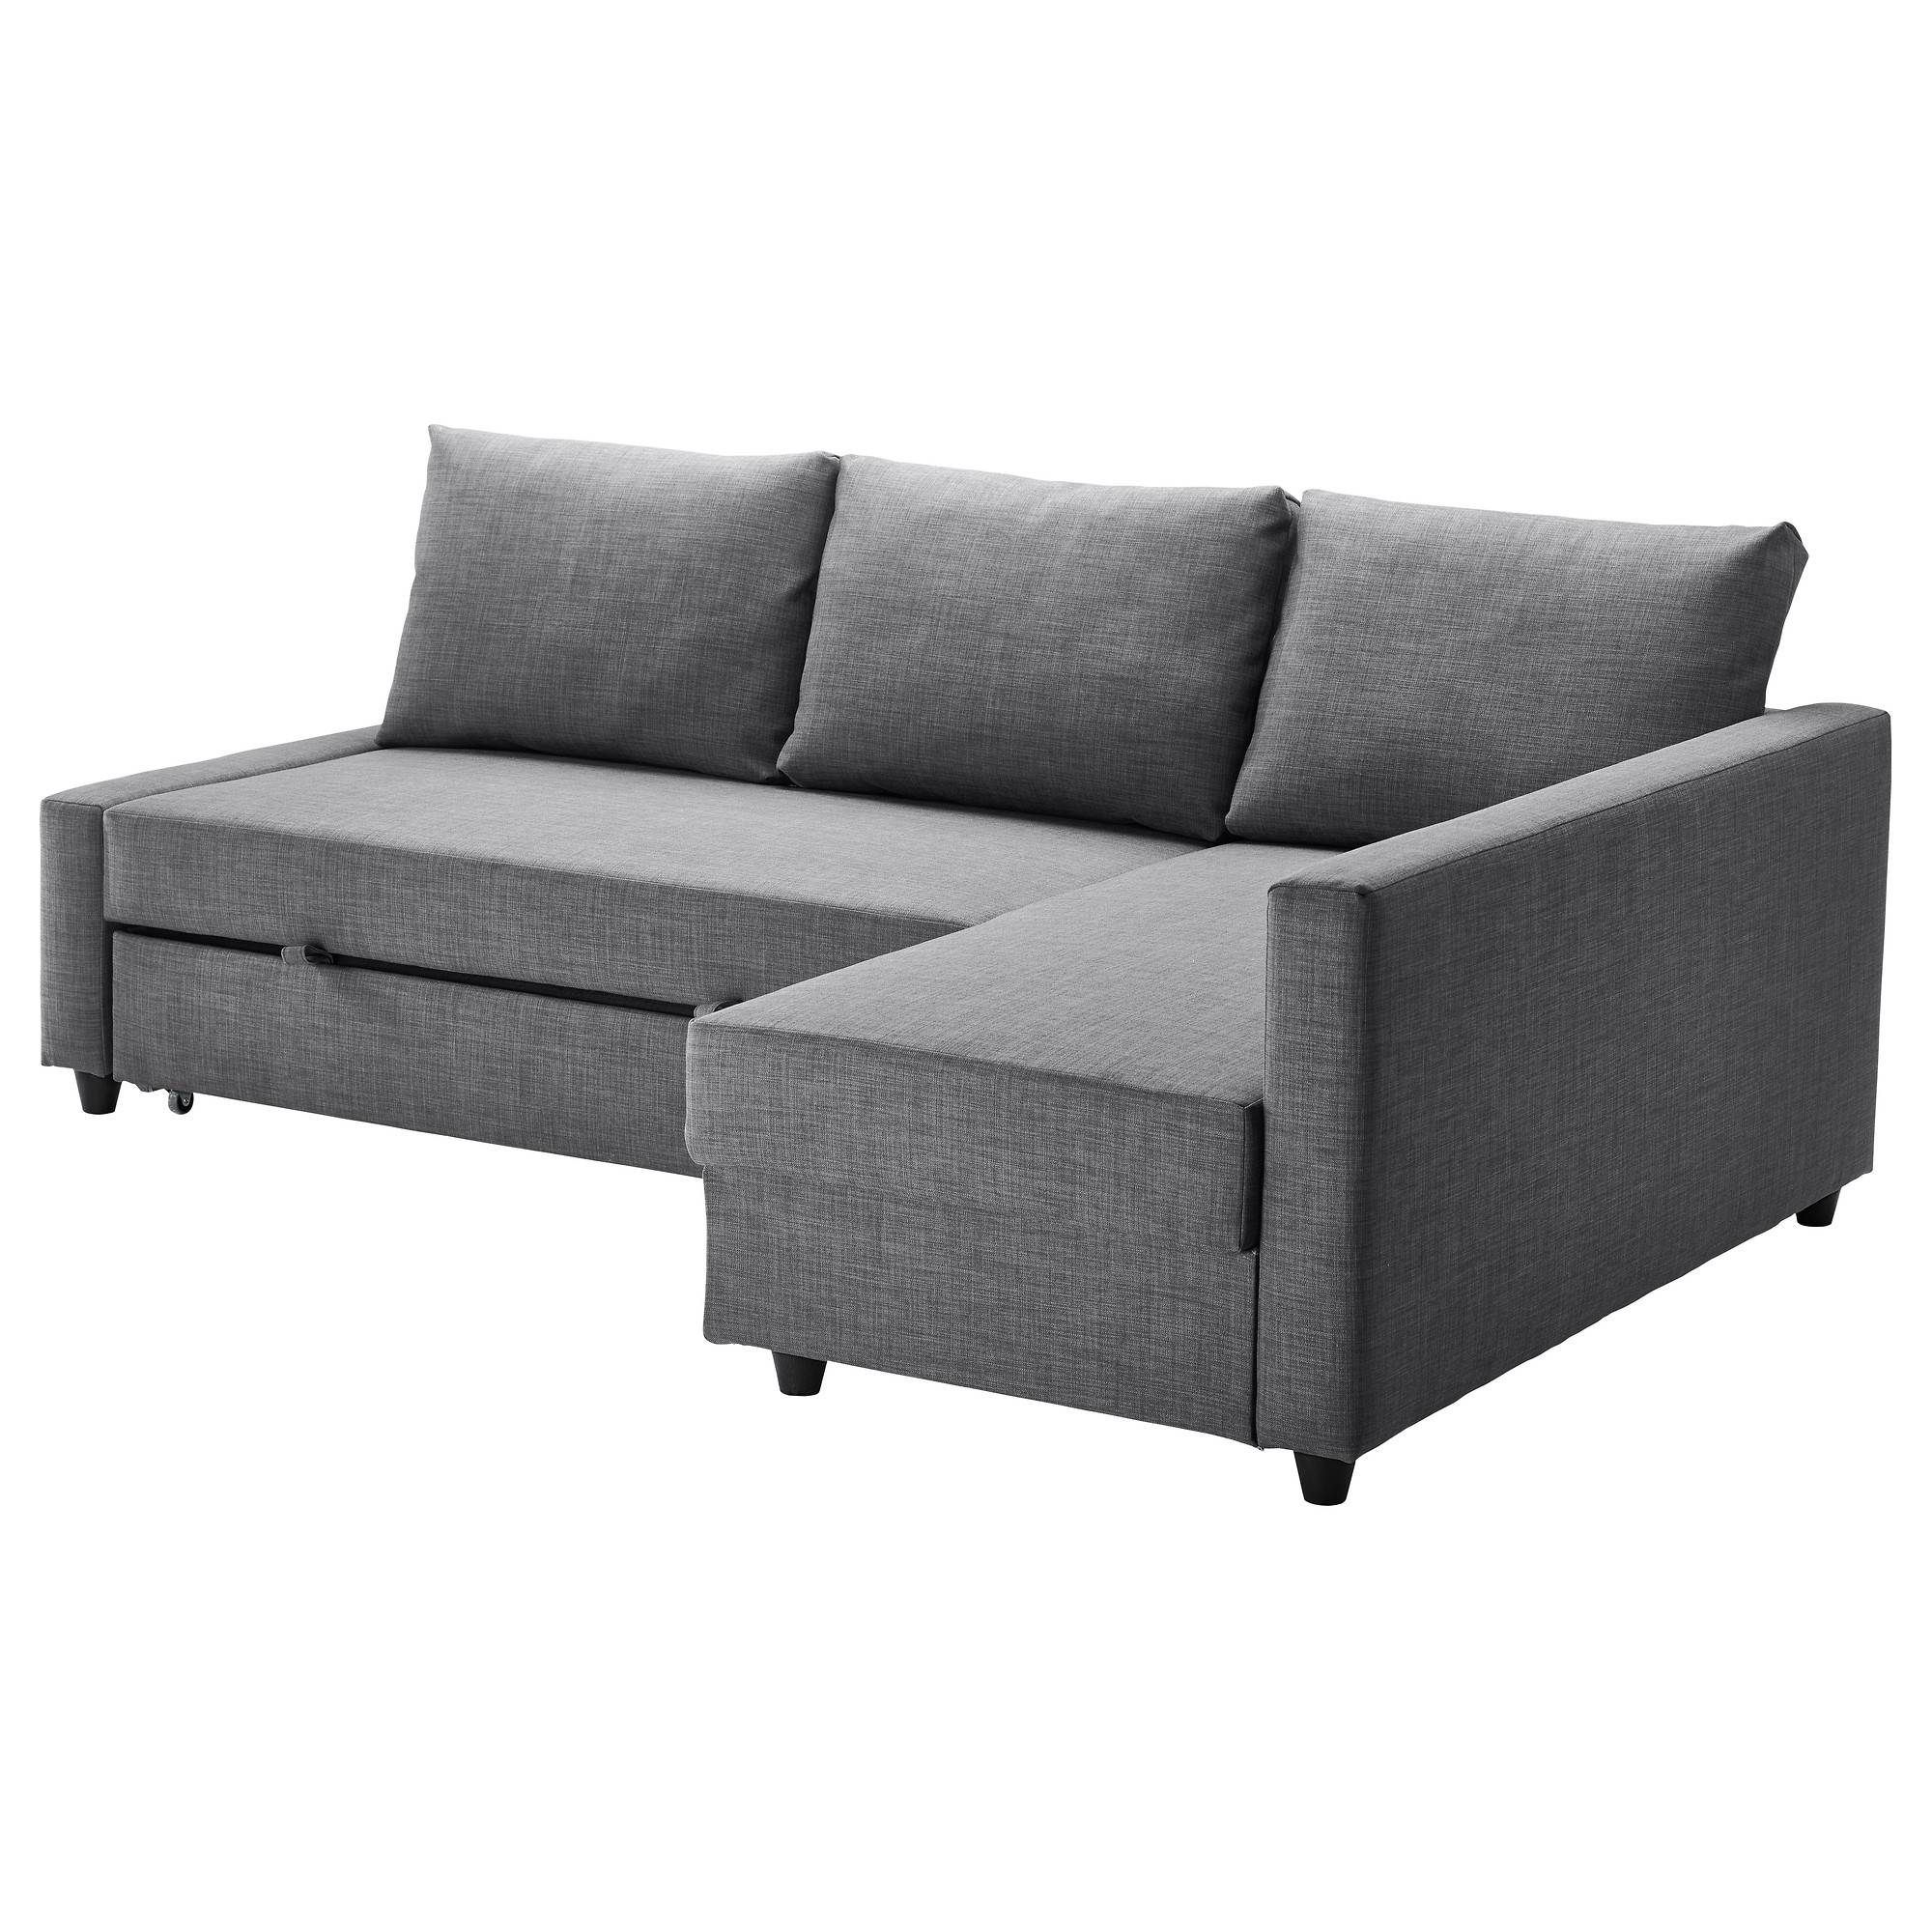 Friheten Corner Sofa-Bed With Storage Skiftebo Dark Grey - Ikea in Ikea Corner Sofa Bed With Storage (Image 11 of 25)